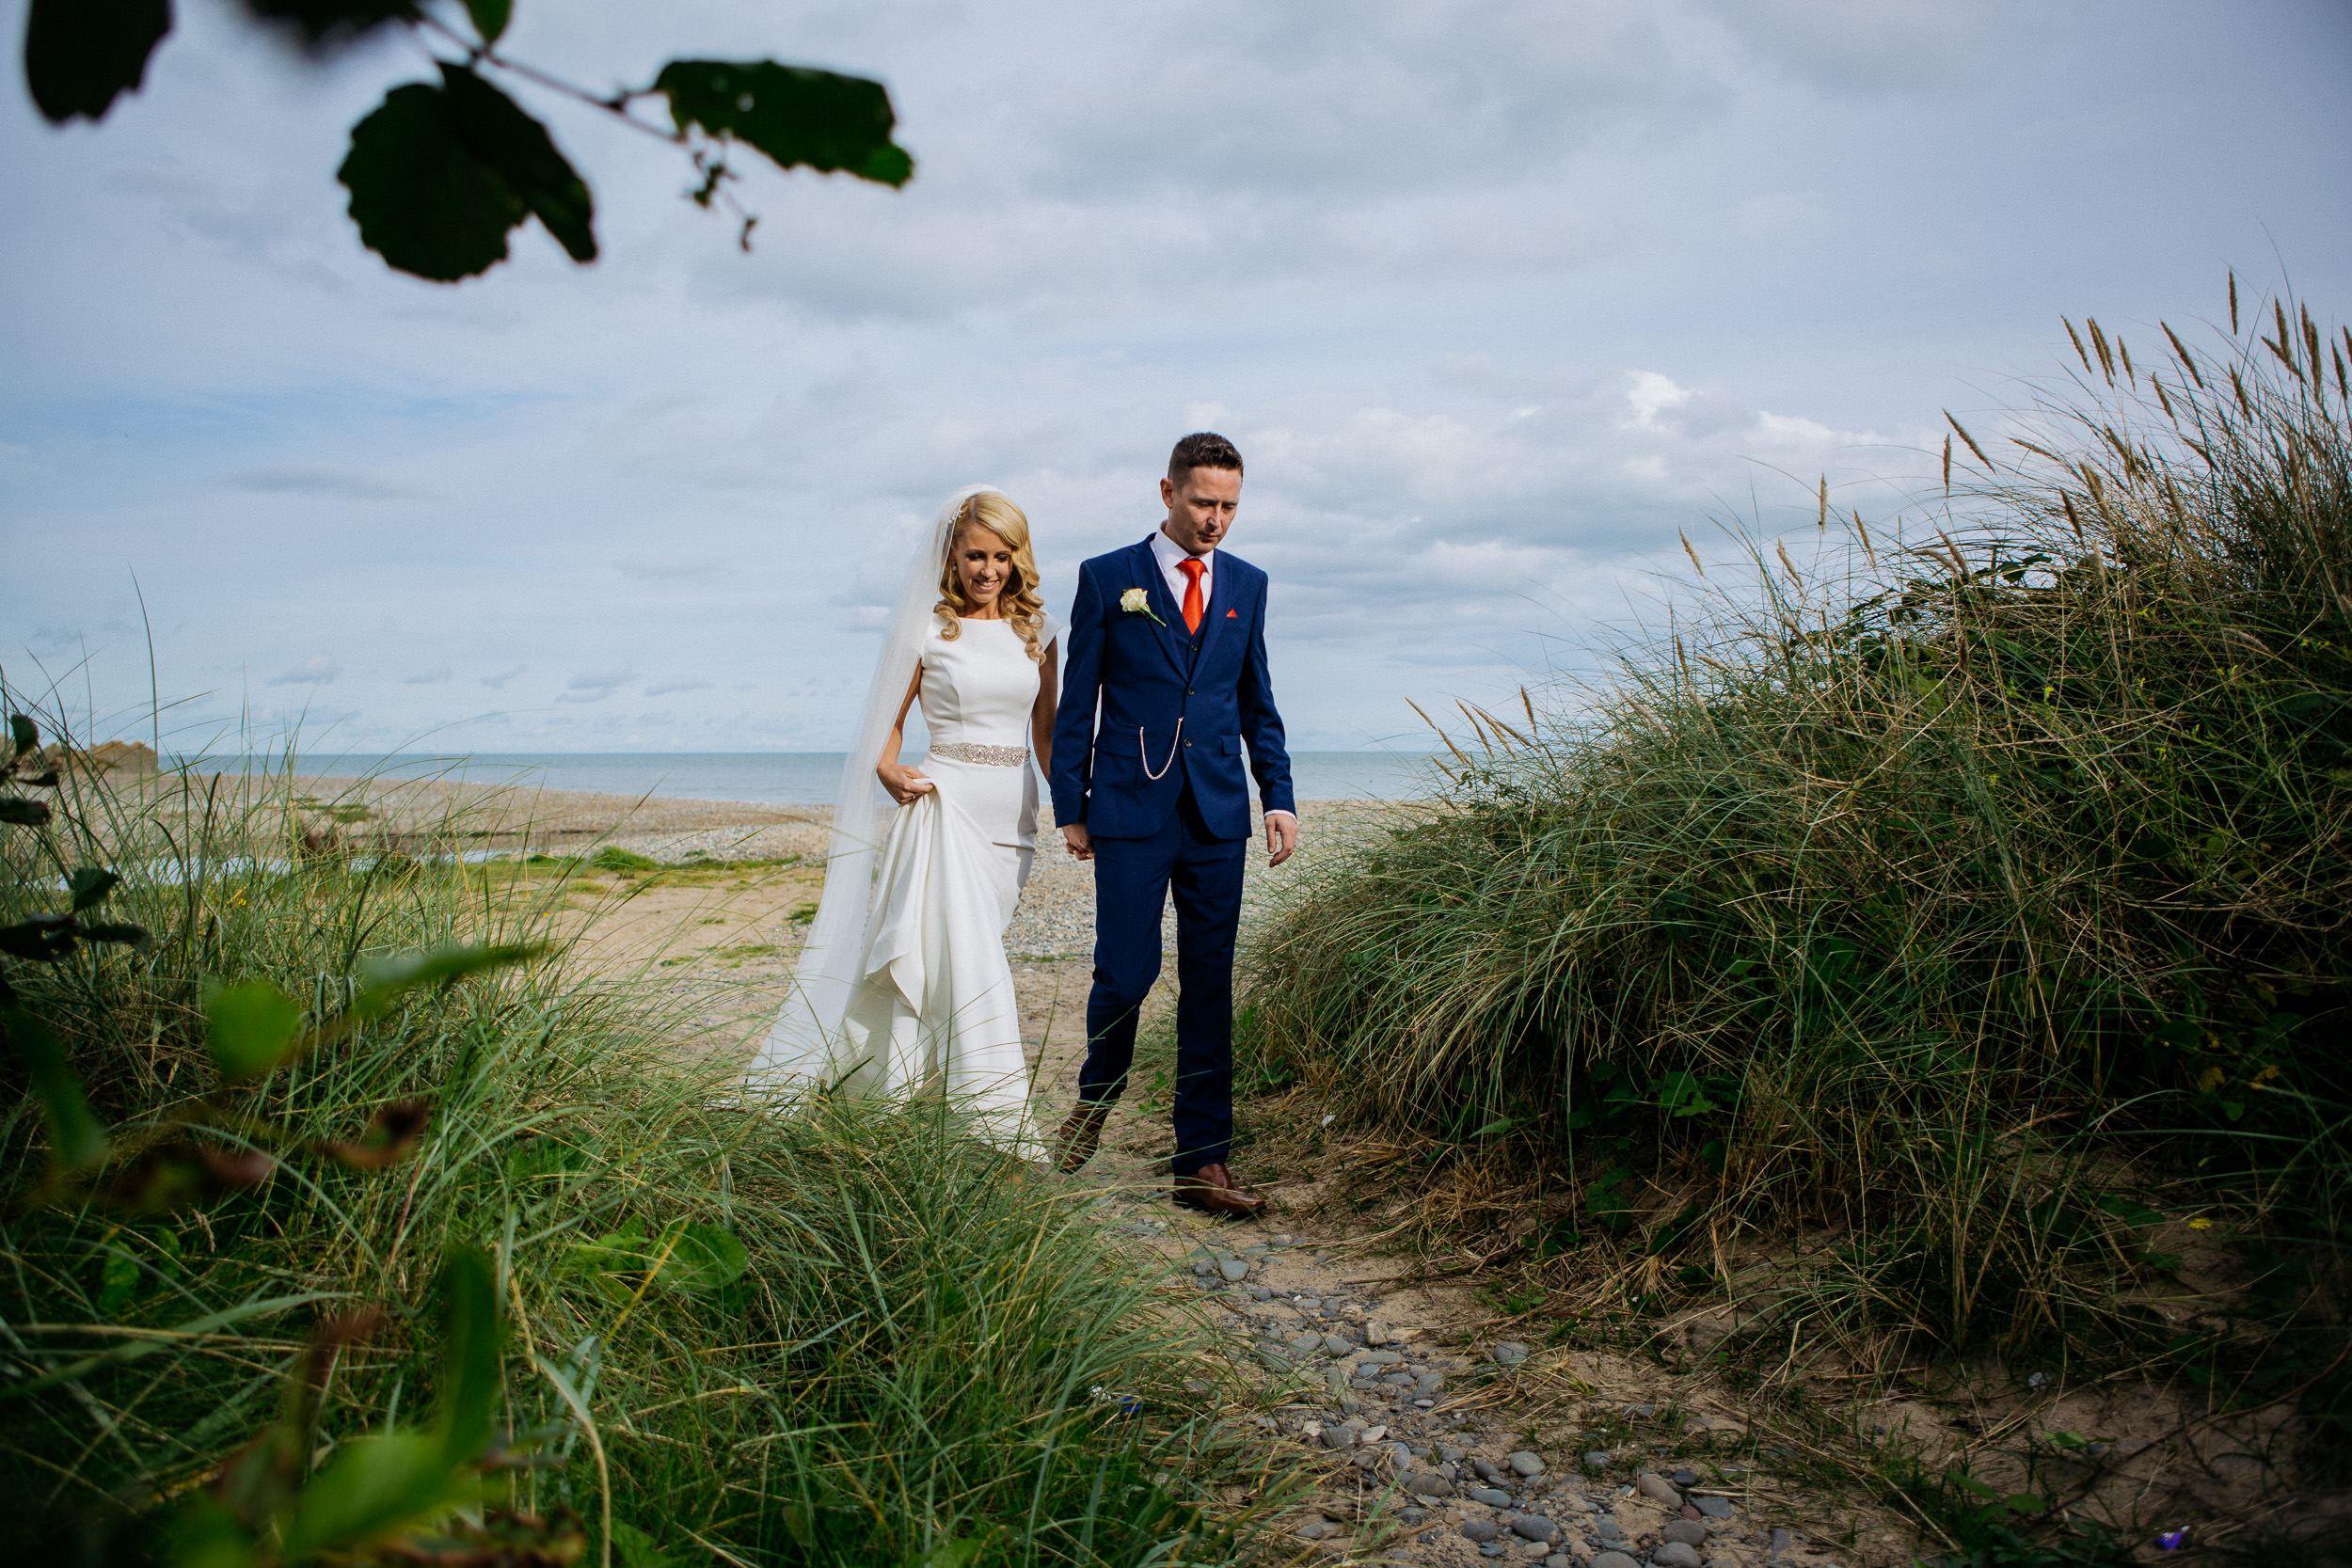 clairebyrnephotography-fun-wedding-photographer-ireland-creative-159.jpg